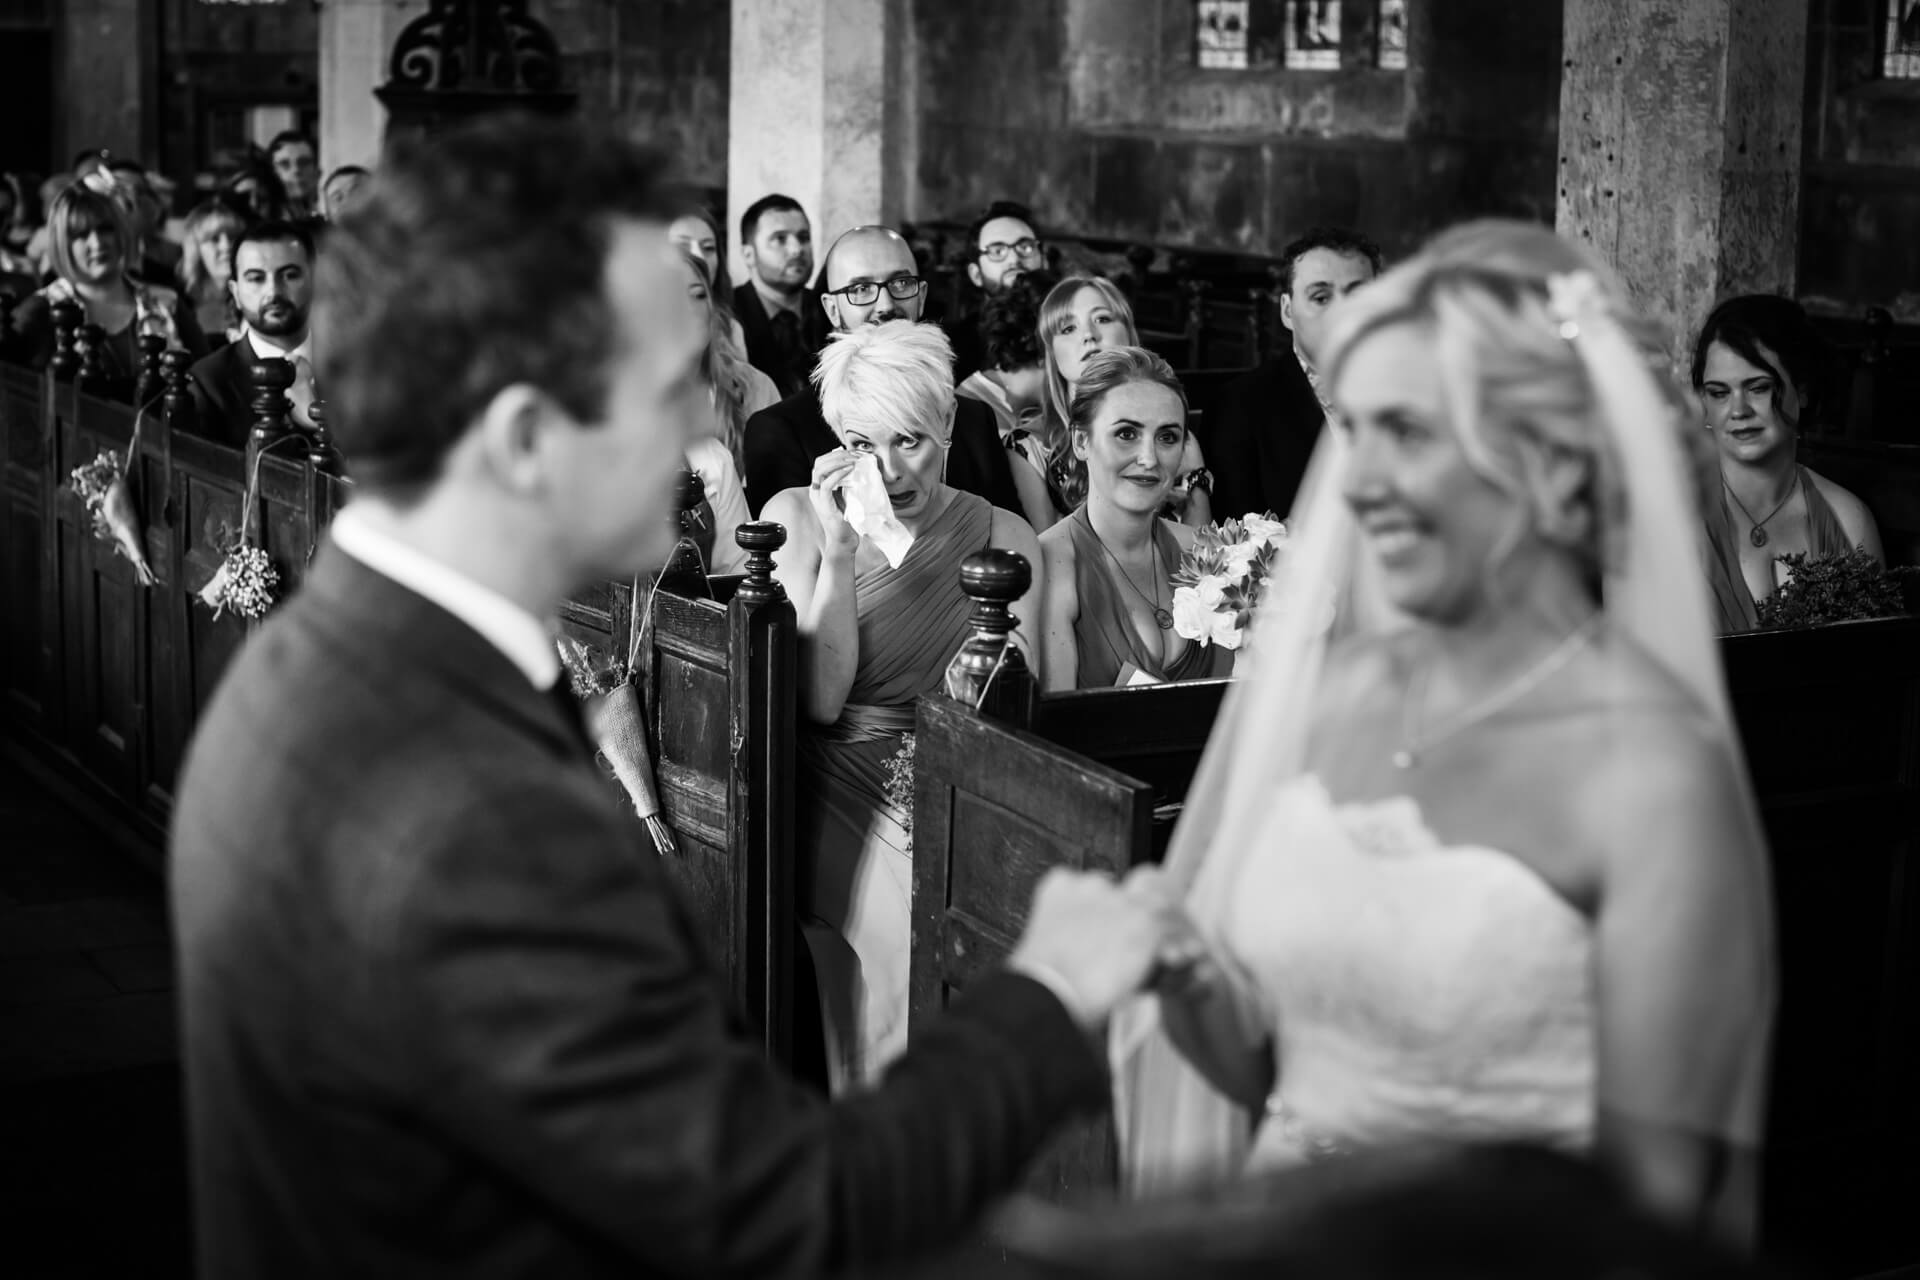 bridesmaid shedding a tear during the wedding ceremony